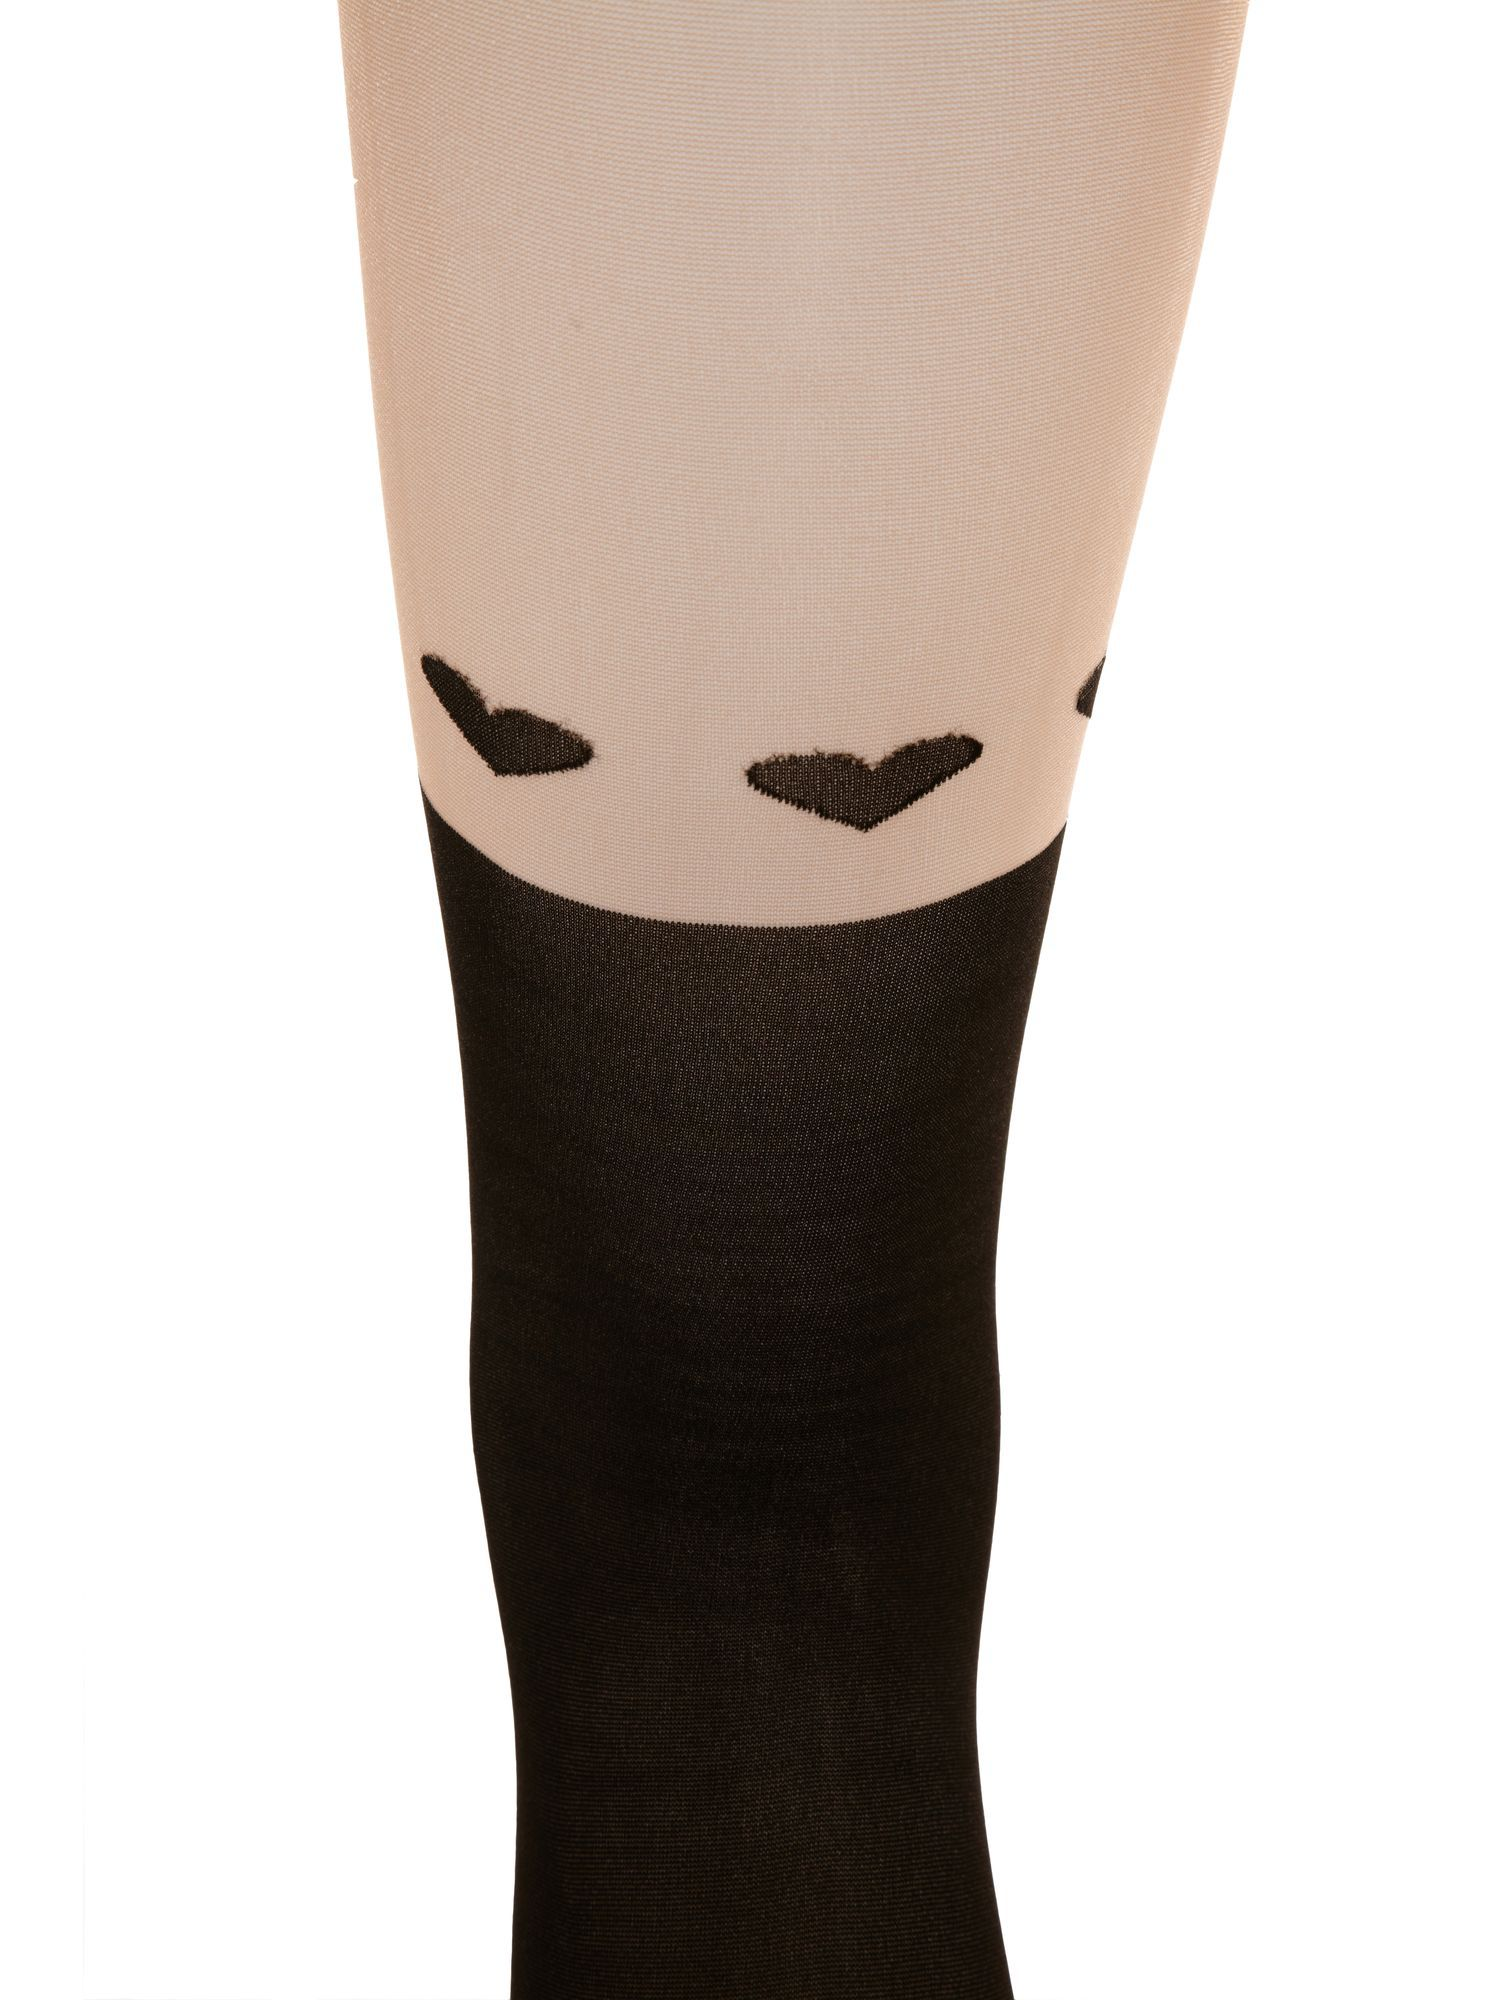 Over the knee heart tights.